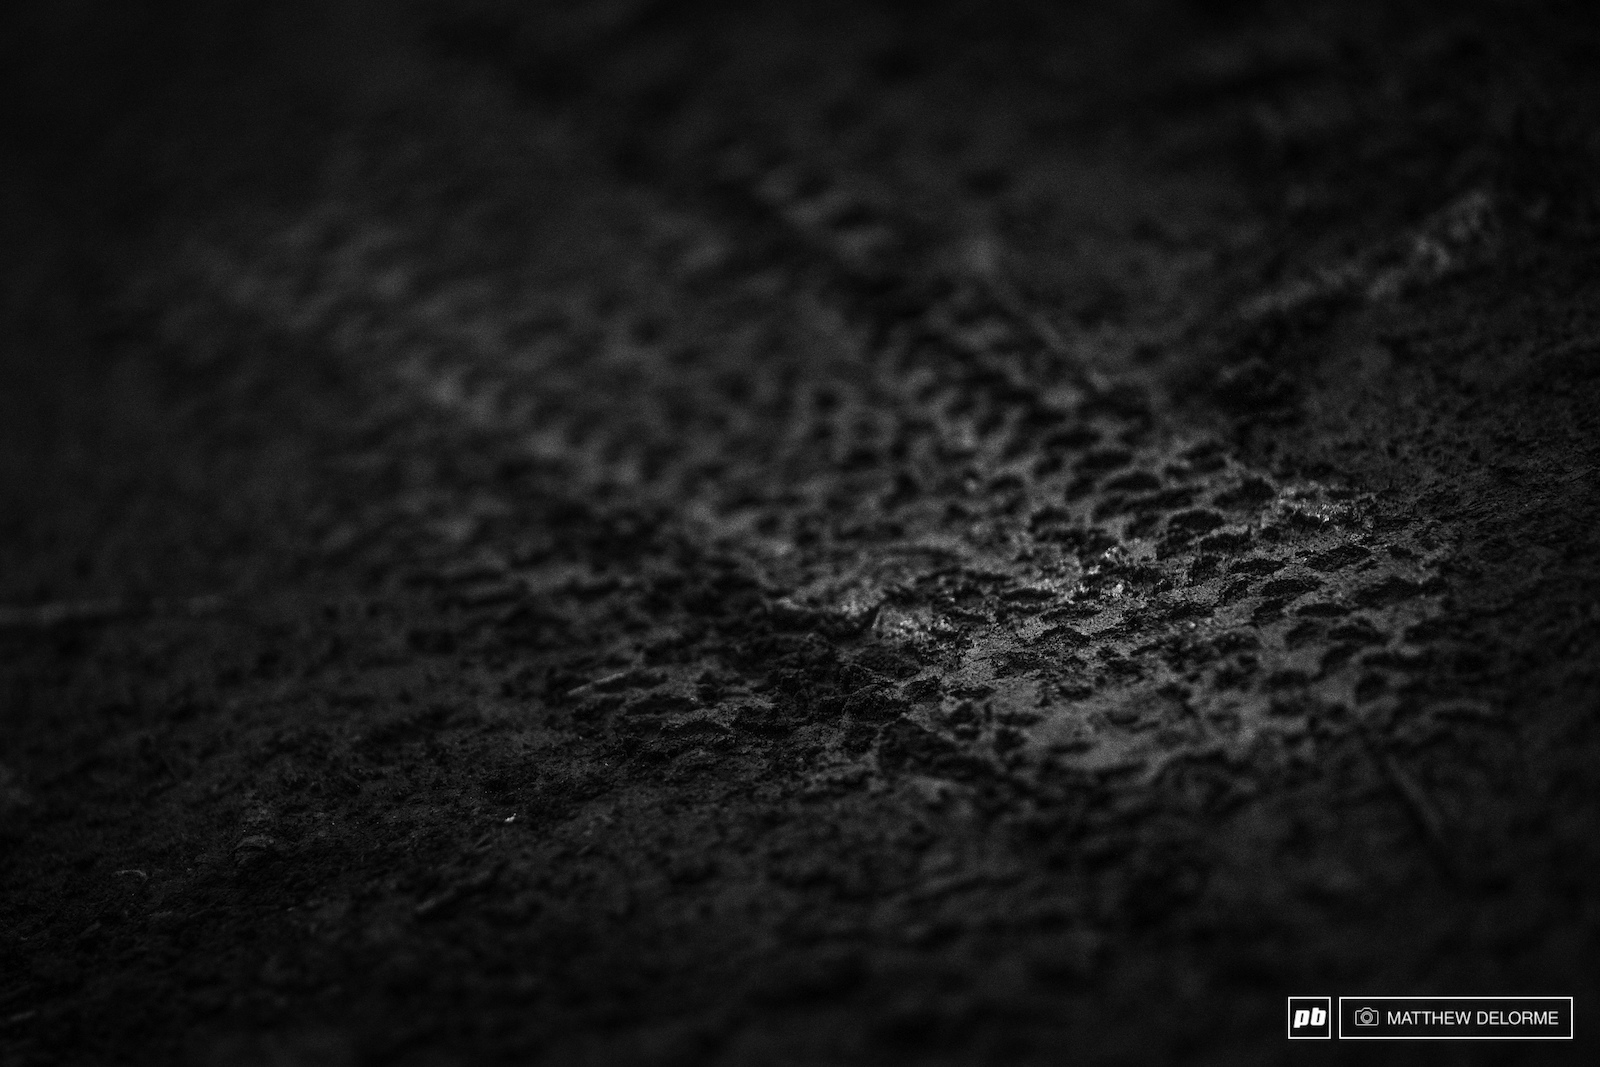 It was dusty earlier in the week but in traditional MSA fashion tires are leaving imprints int he mud.